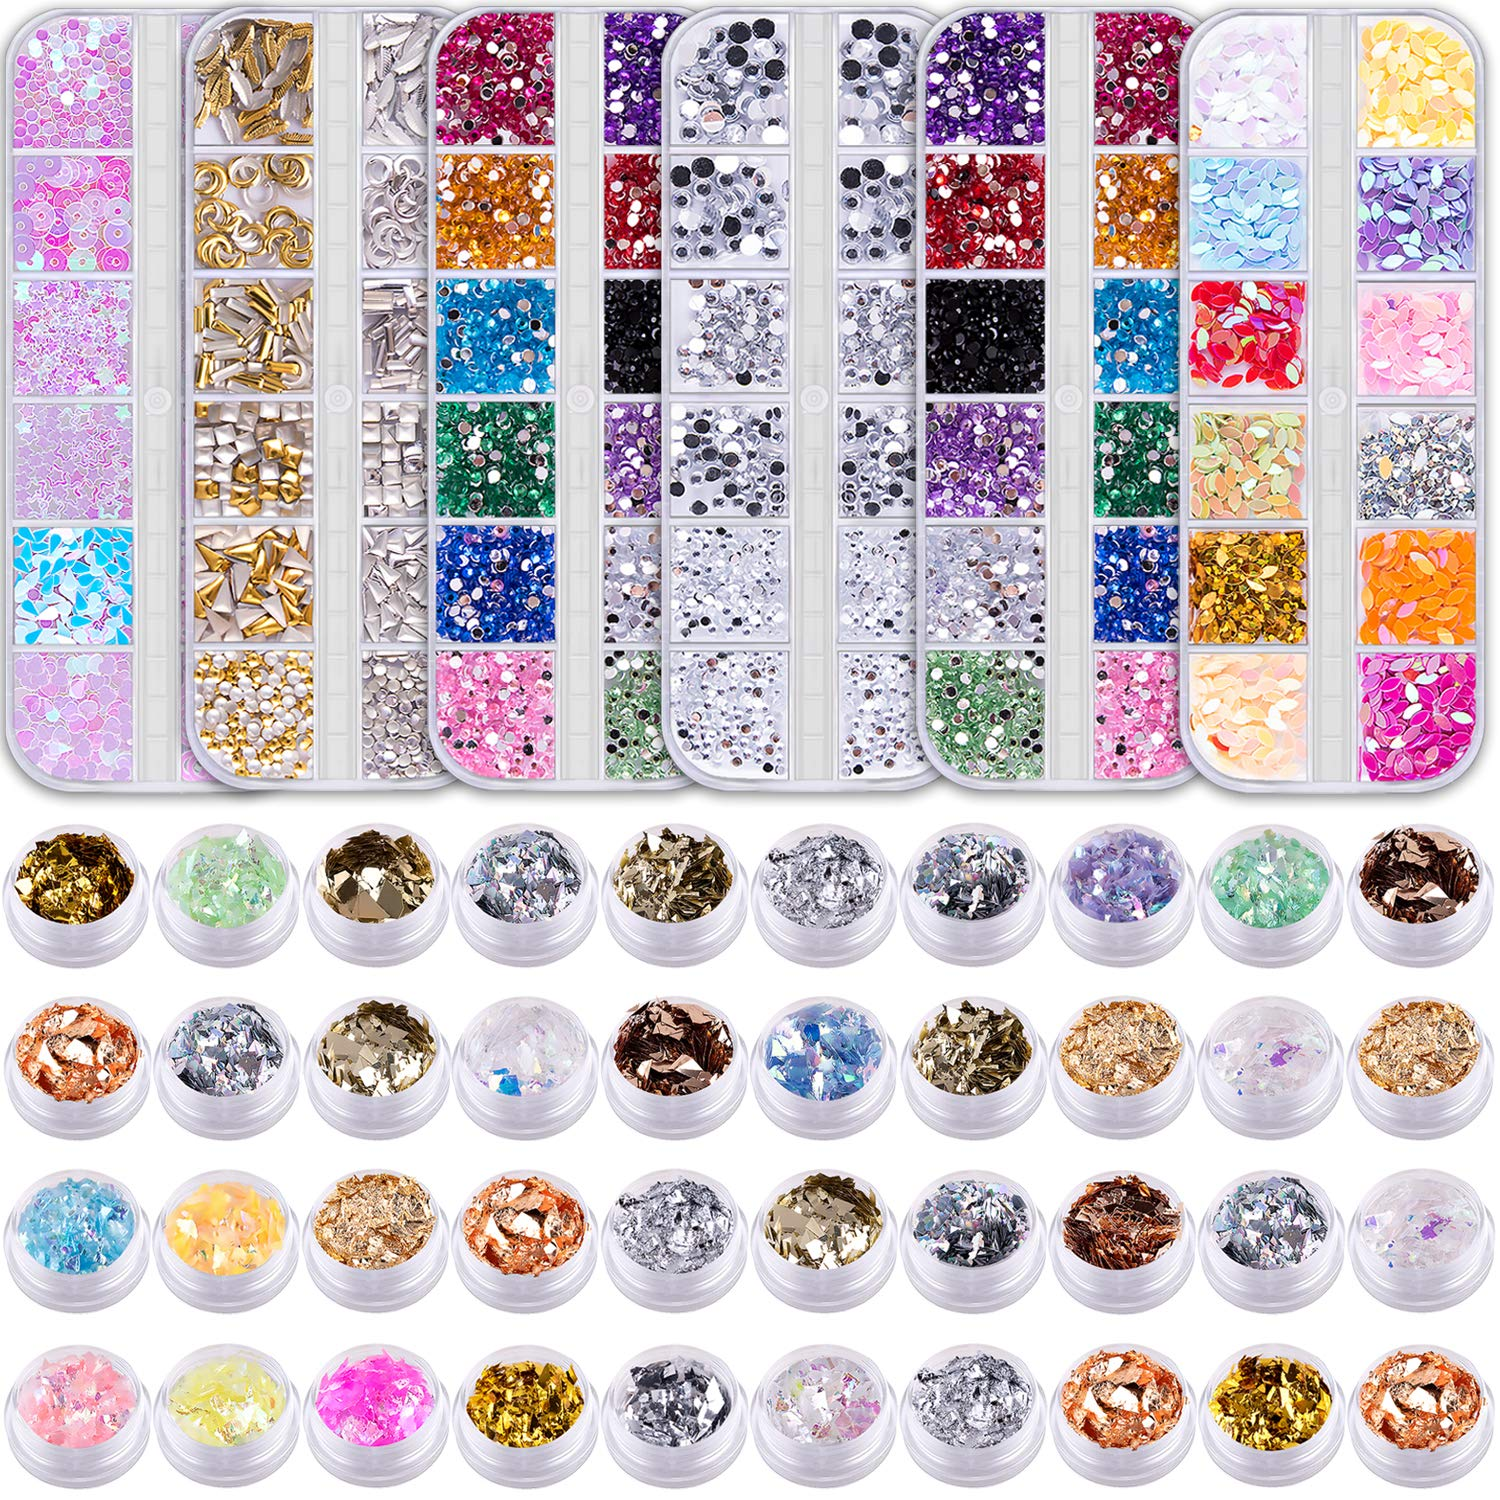 Duufin 6 Boxes Nail Rhinestones and 40 Pots Nail Foils Flakes Nail Paillette Foil Chips Nail Sequins Nail Gems Nail Studs for Nails Art by Duufin